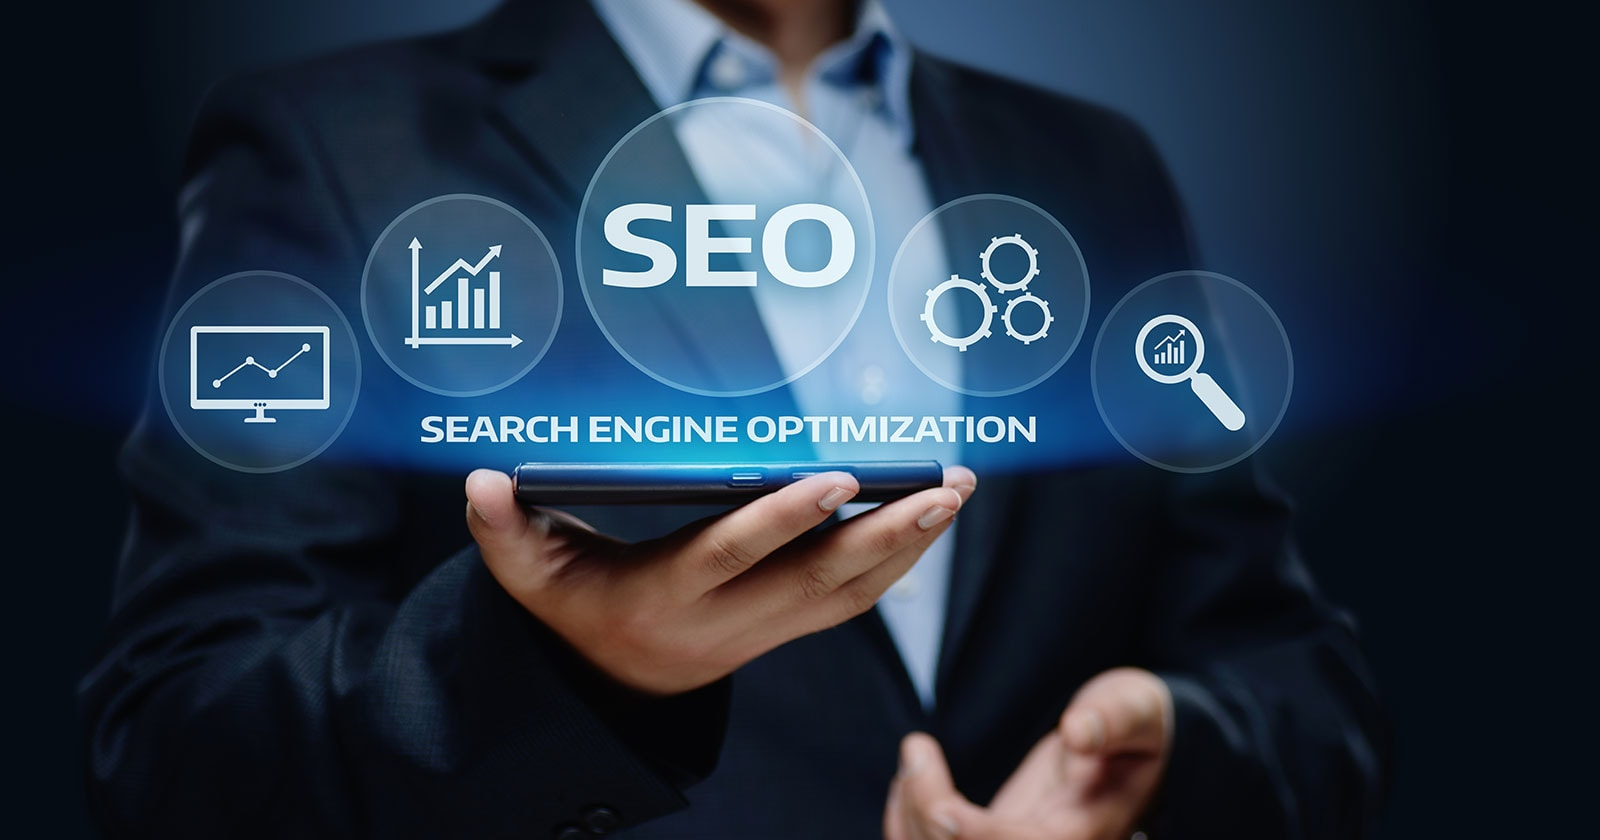 search engine optimization Article Marketing